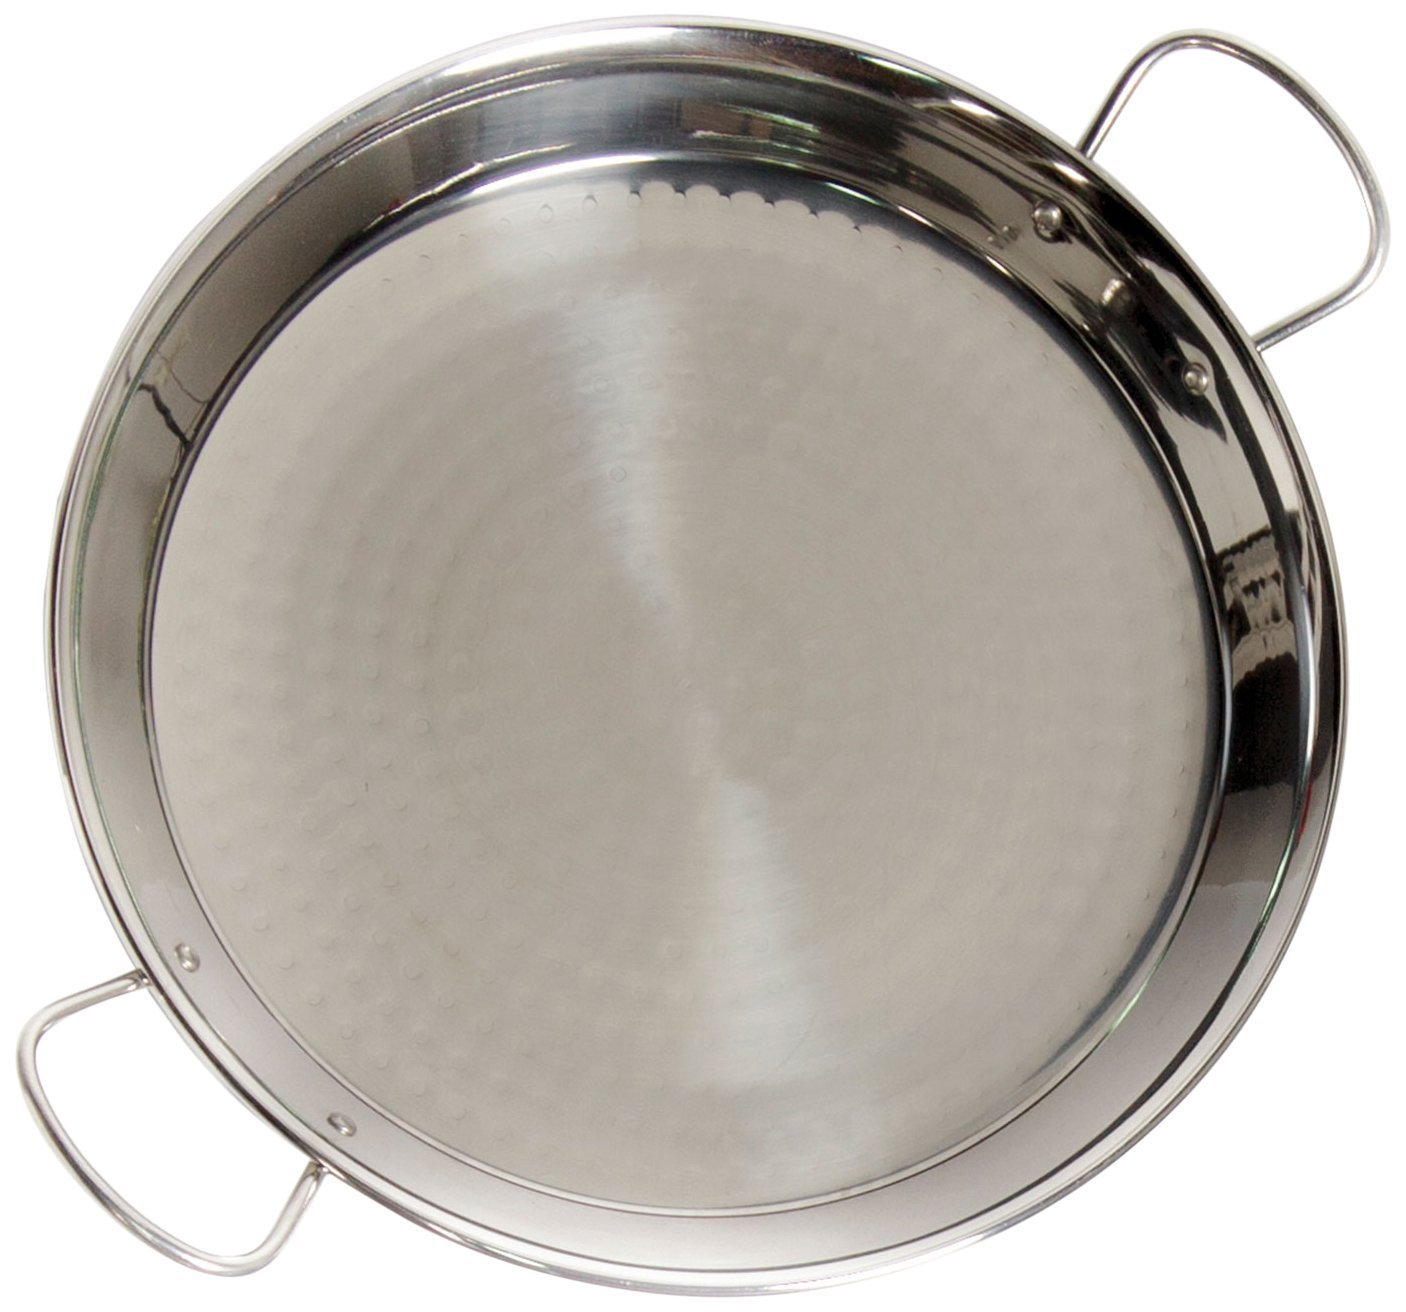 Vaello Campos Stainless Steel Paella Pan 56Cm (16 People) 22inches